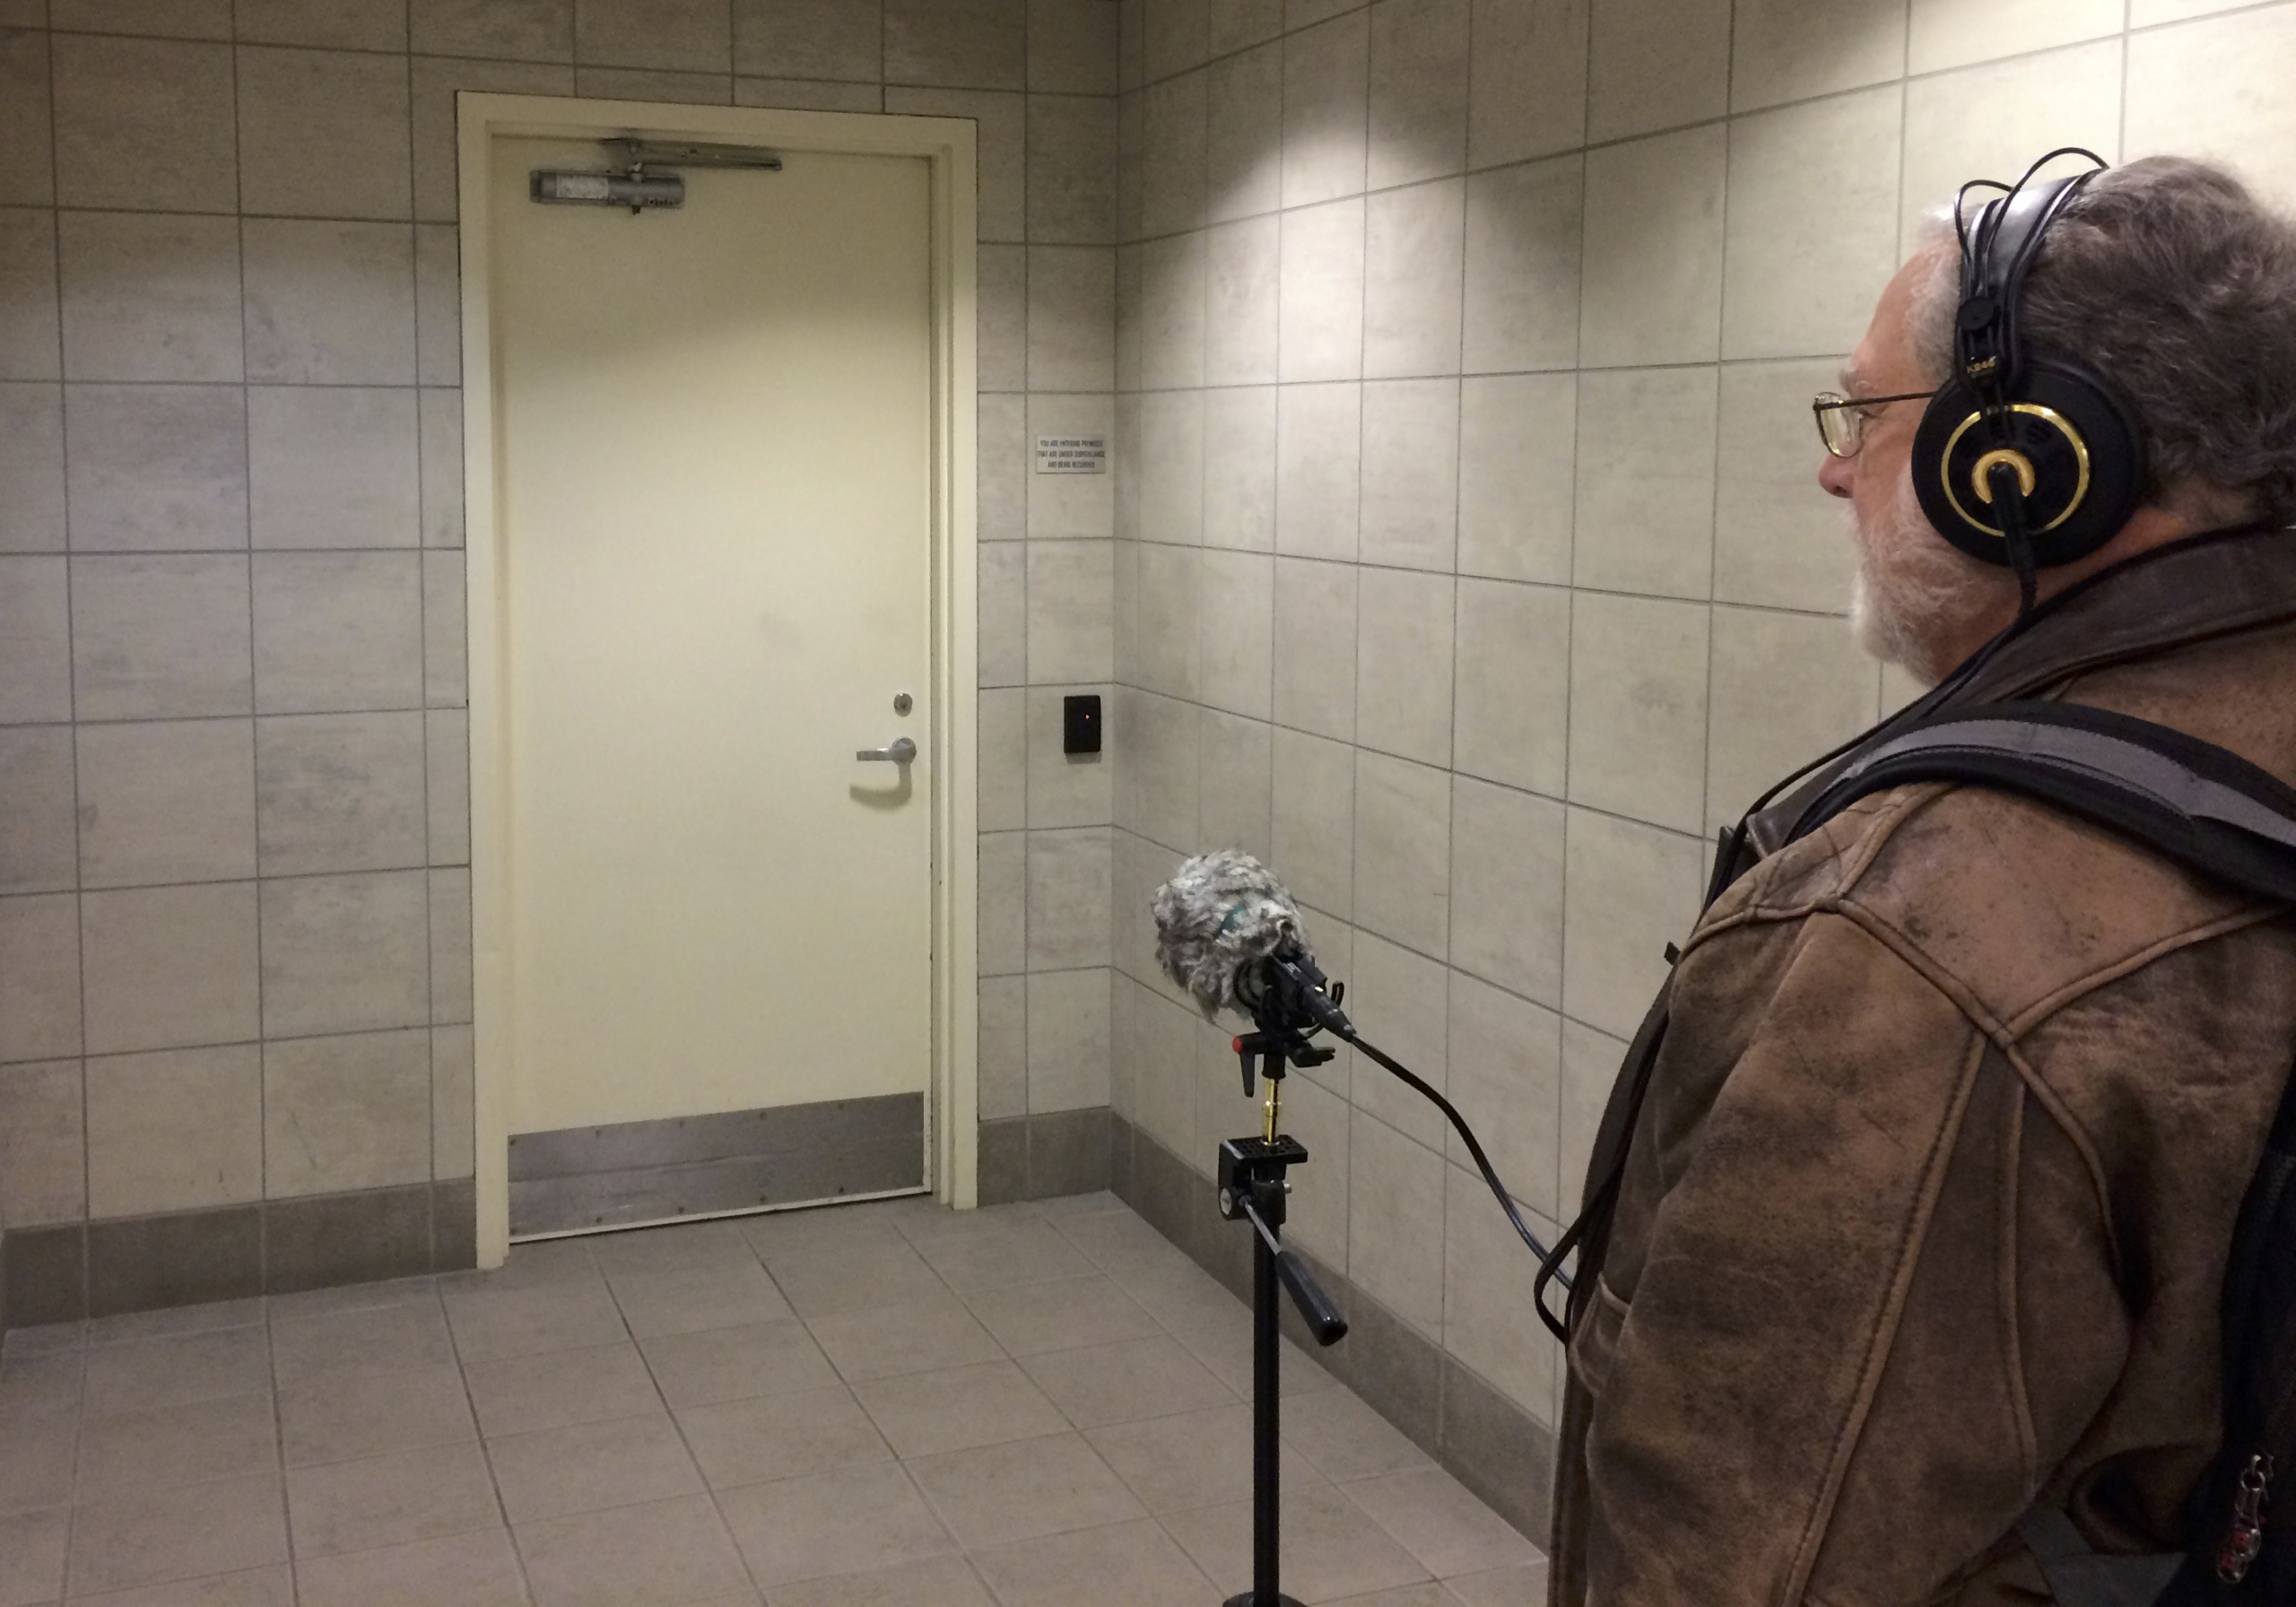 White male wearing headphones with recorder listening to sound in a hallway